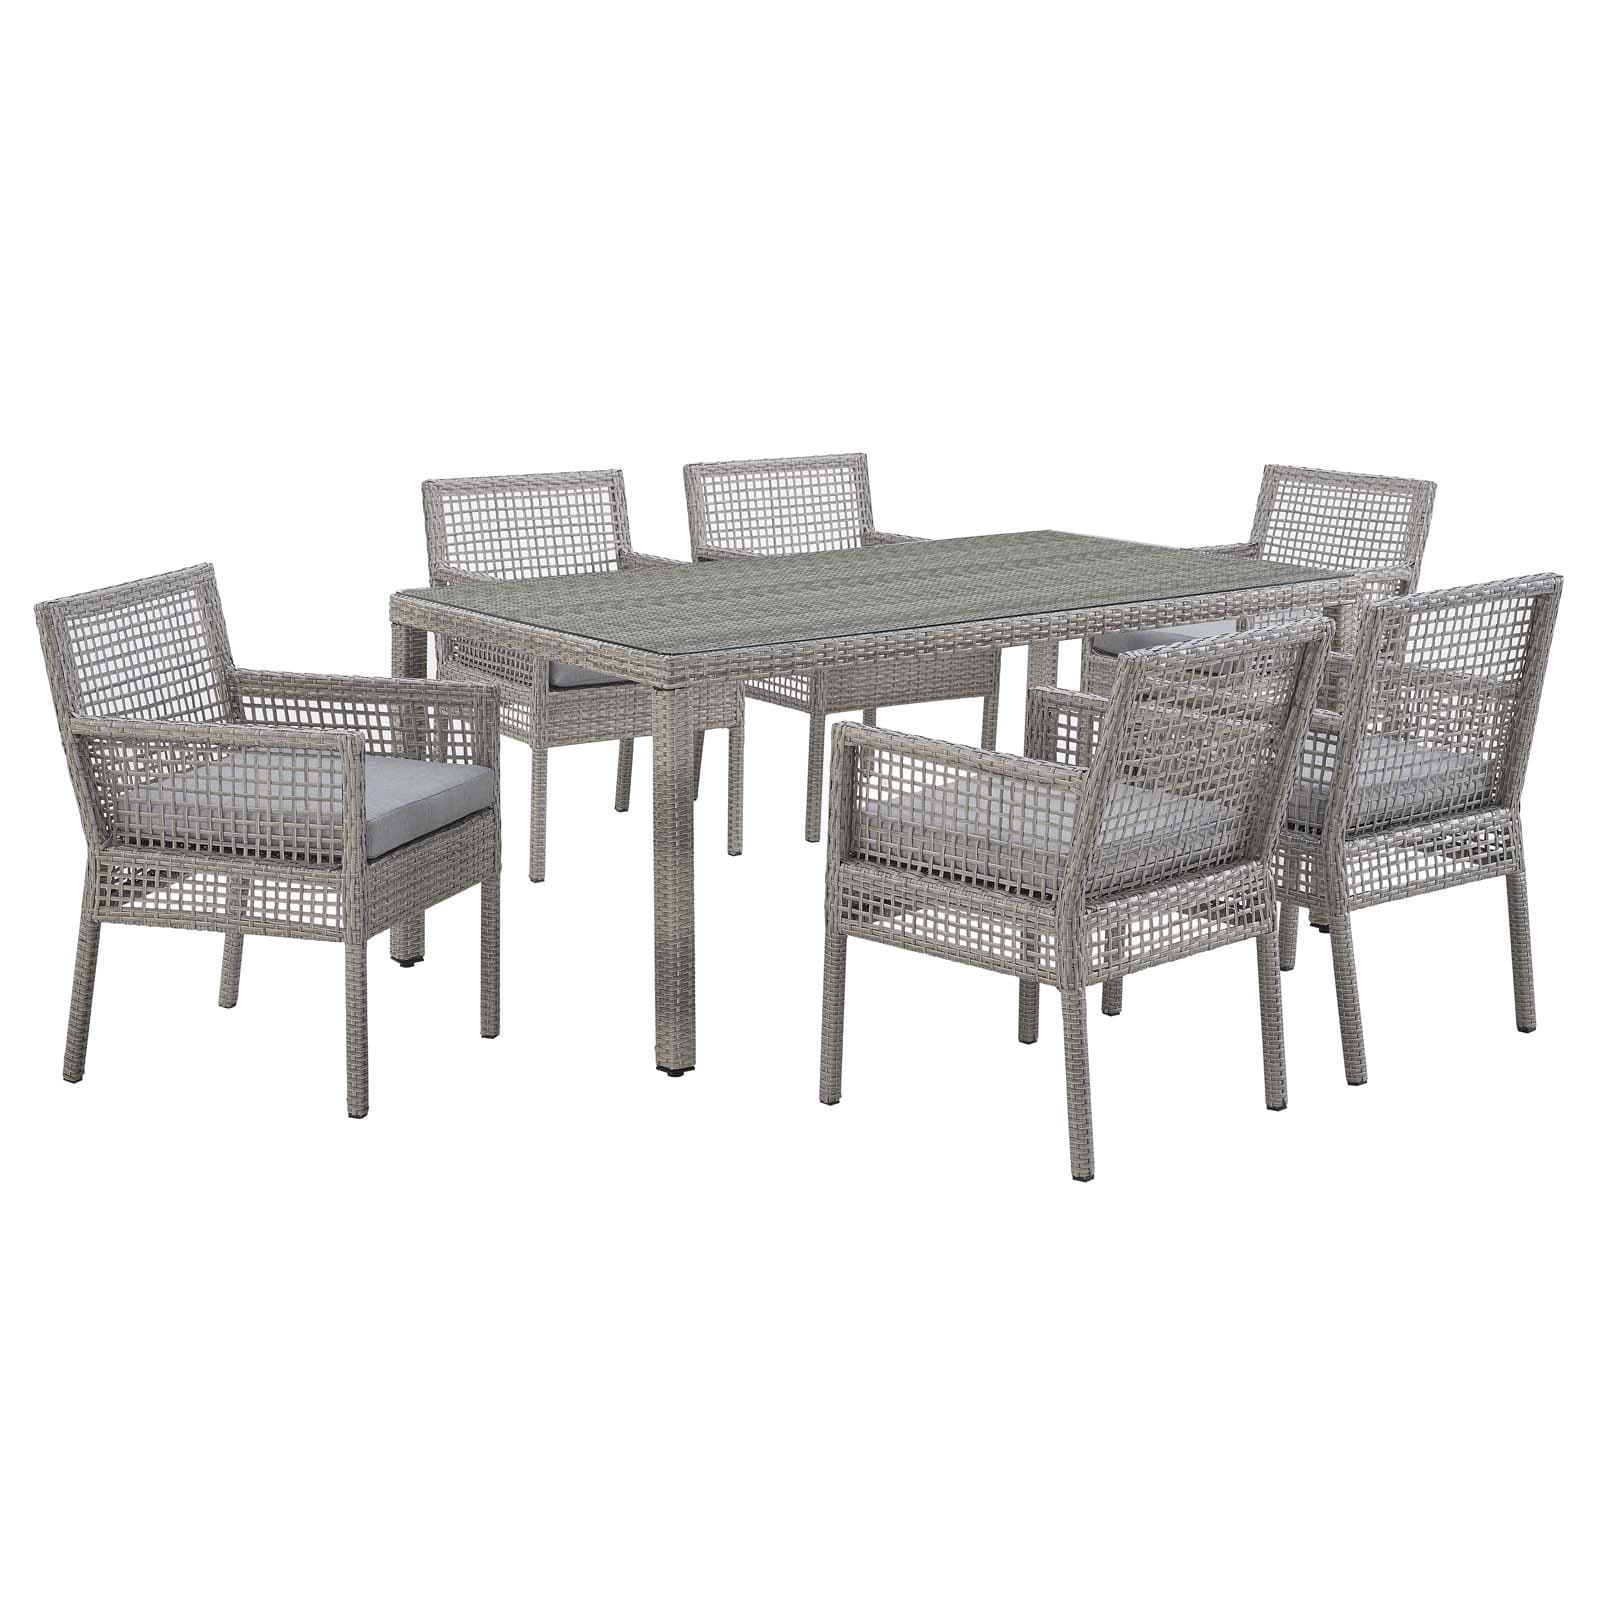 Magnificent Buy Outdoor Dining Sets Online At Overstock Our Best Patio Caraccident5 Cool Chair Designs And Ideas Caraccident5Info